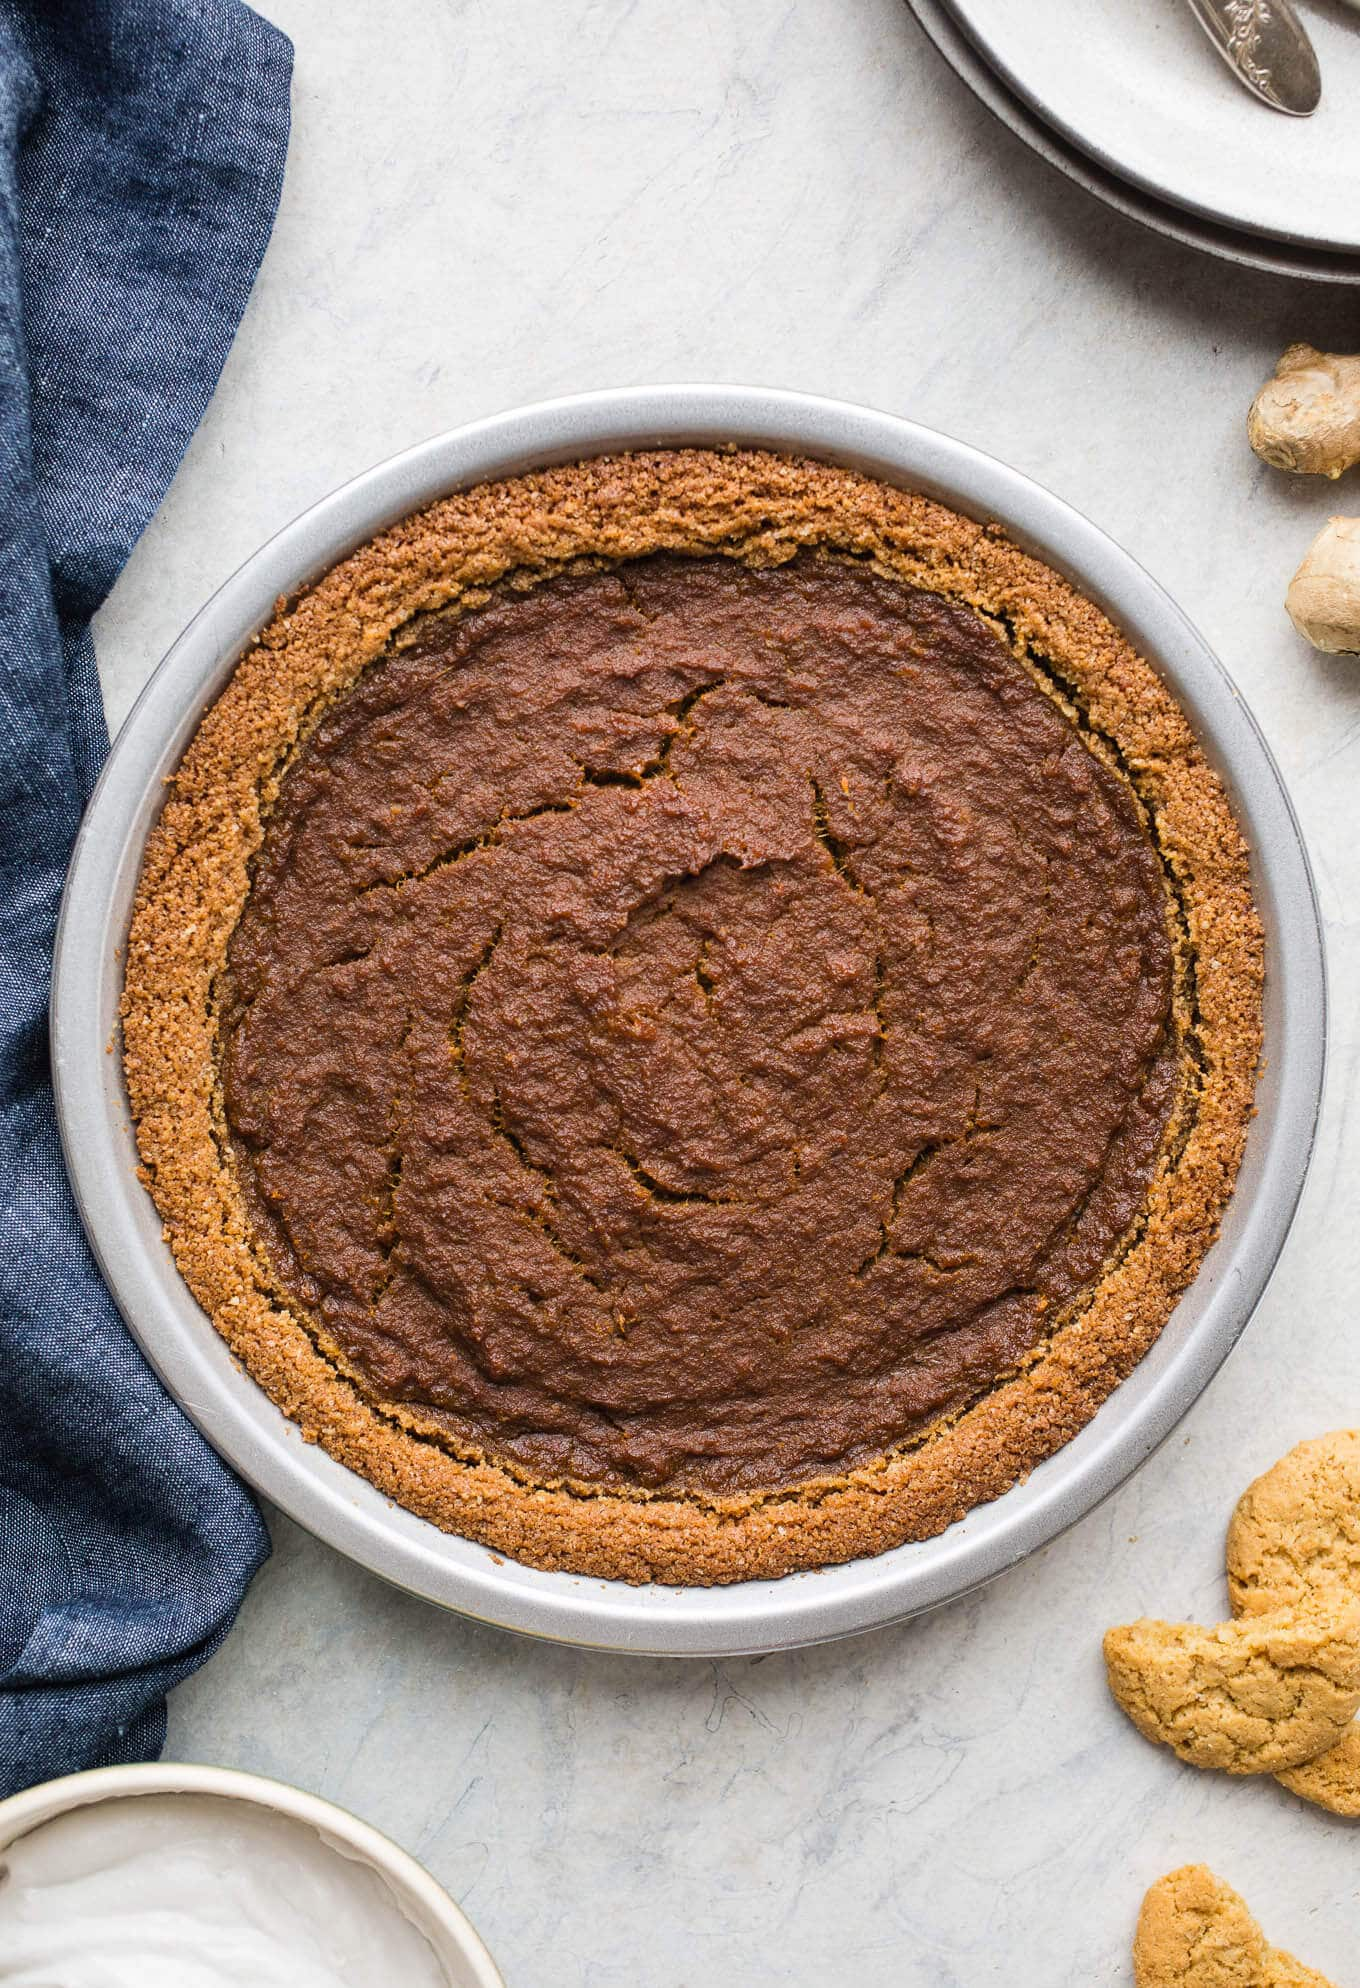 Gingersnap Pumpkin Pie makes for a delicious take on a classic dessert. Made with gingersnap cookie crust and sweetened with coconut sugar and maple syrup. Gluten-free and vegan friendly.